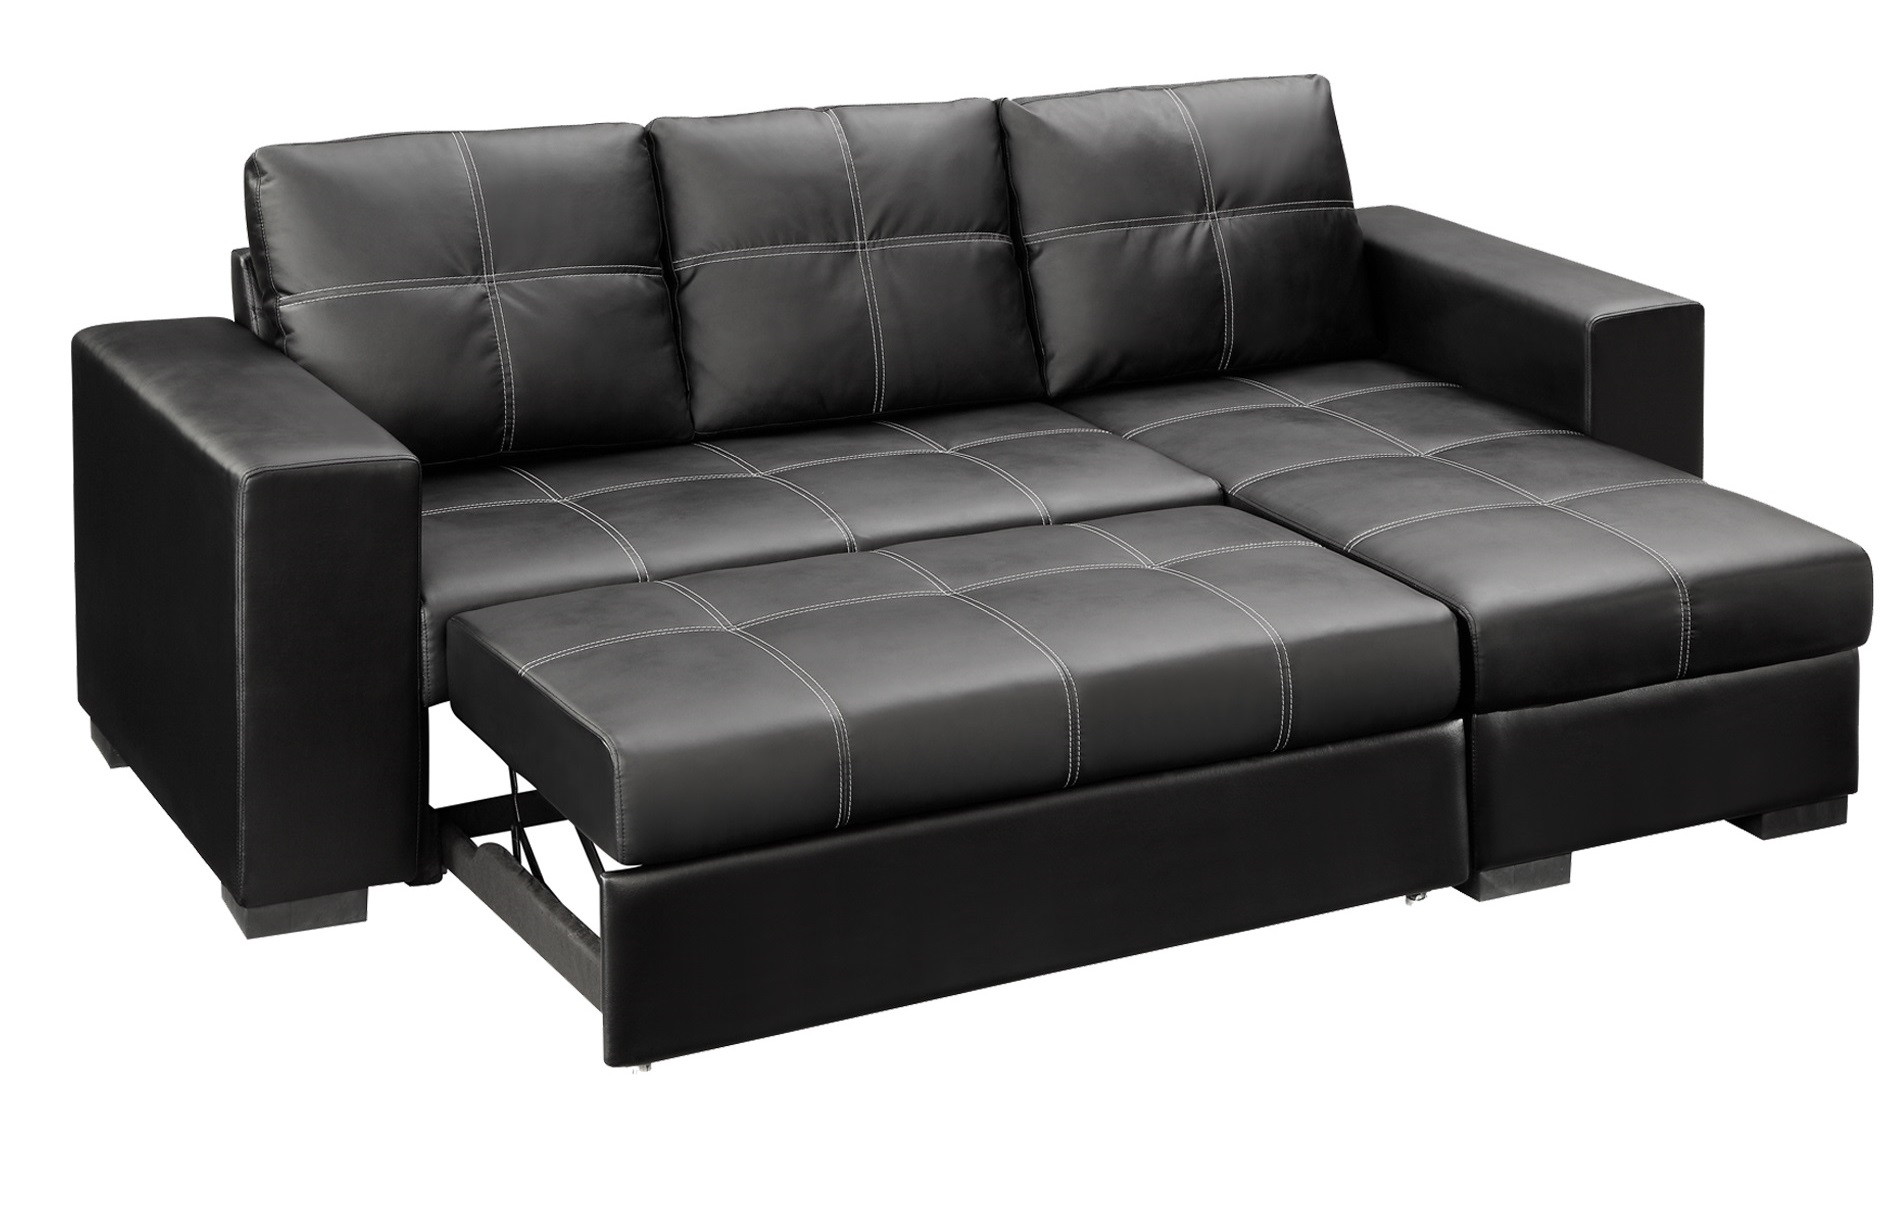 Sofa Gianni Gianni Sofa Lounger - Furtado Furniture